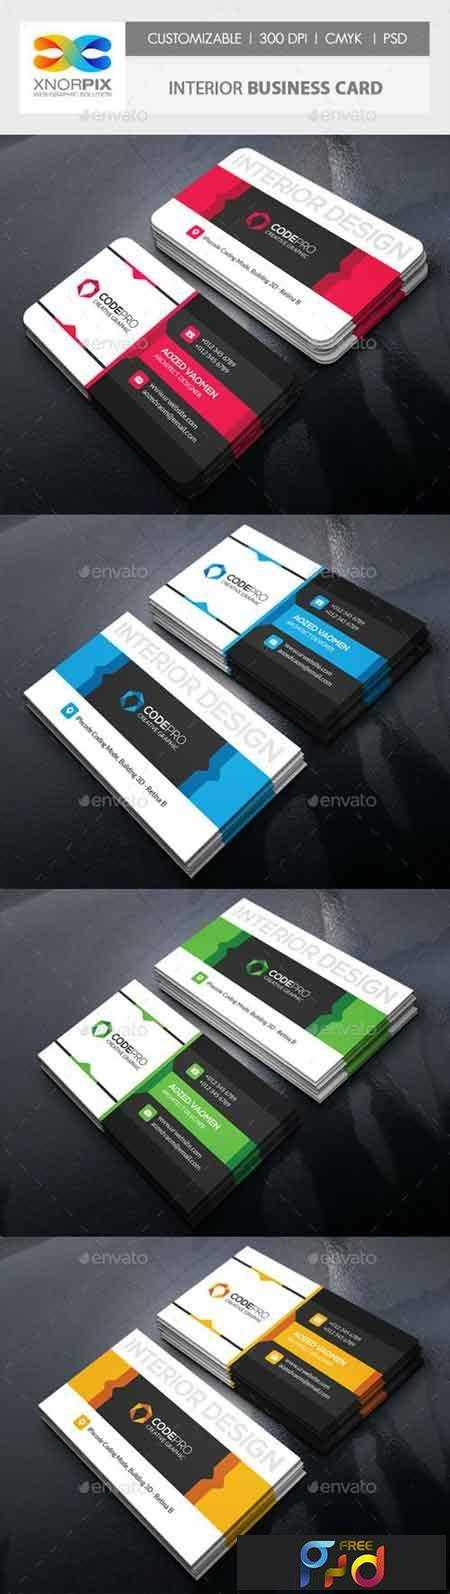 FreePsdVn.com_1704086_PRINT TEMPLATE_interior_business_card_20261573